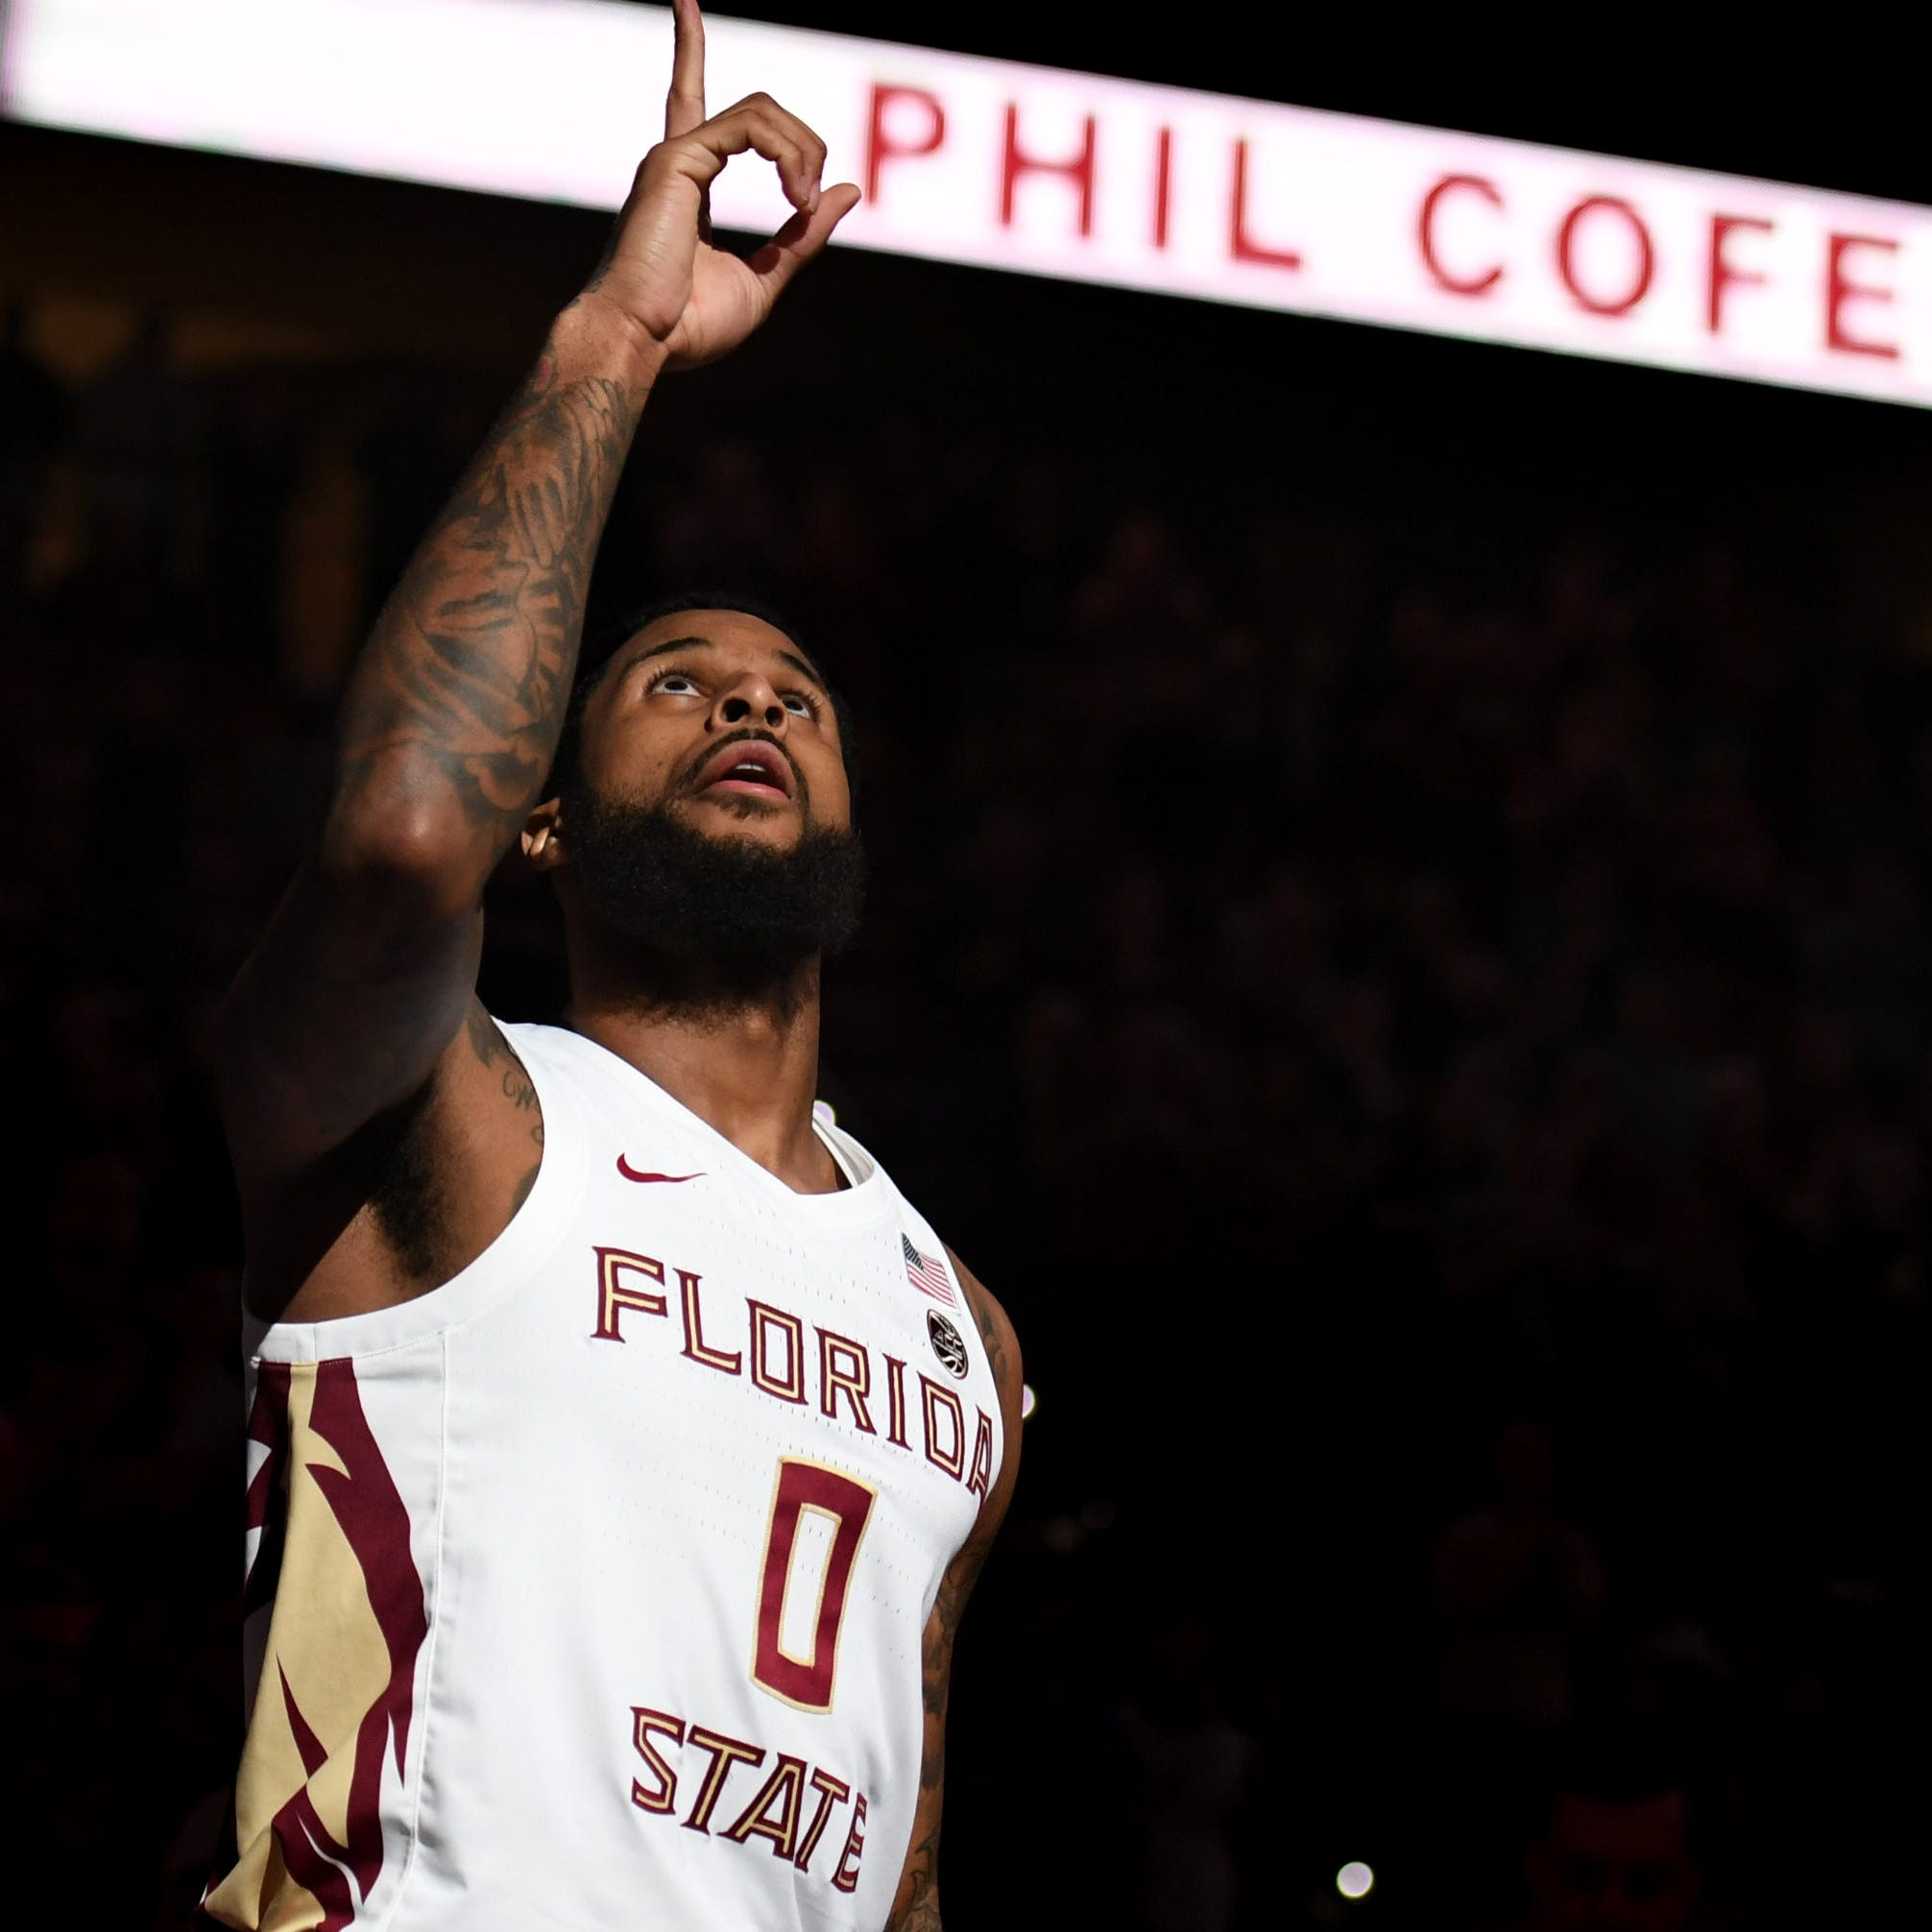 Father of Florida State forward Phil Cofer passes away